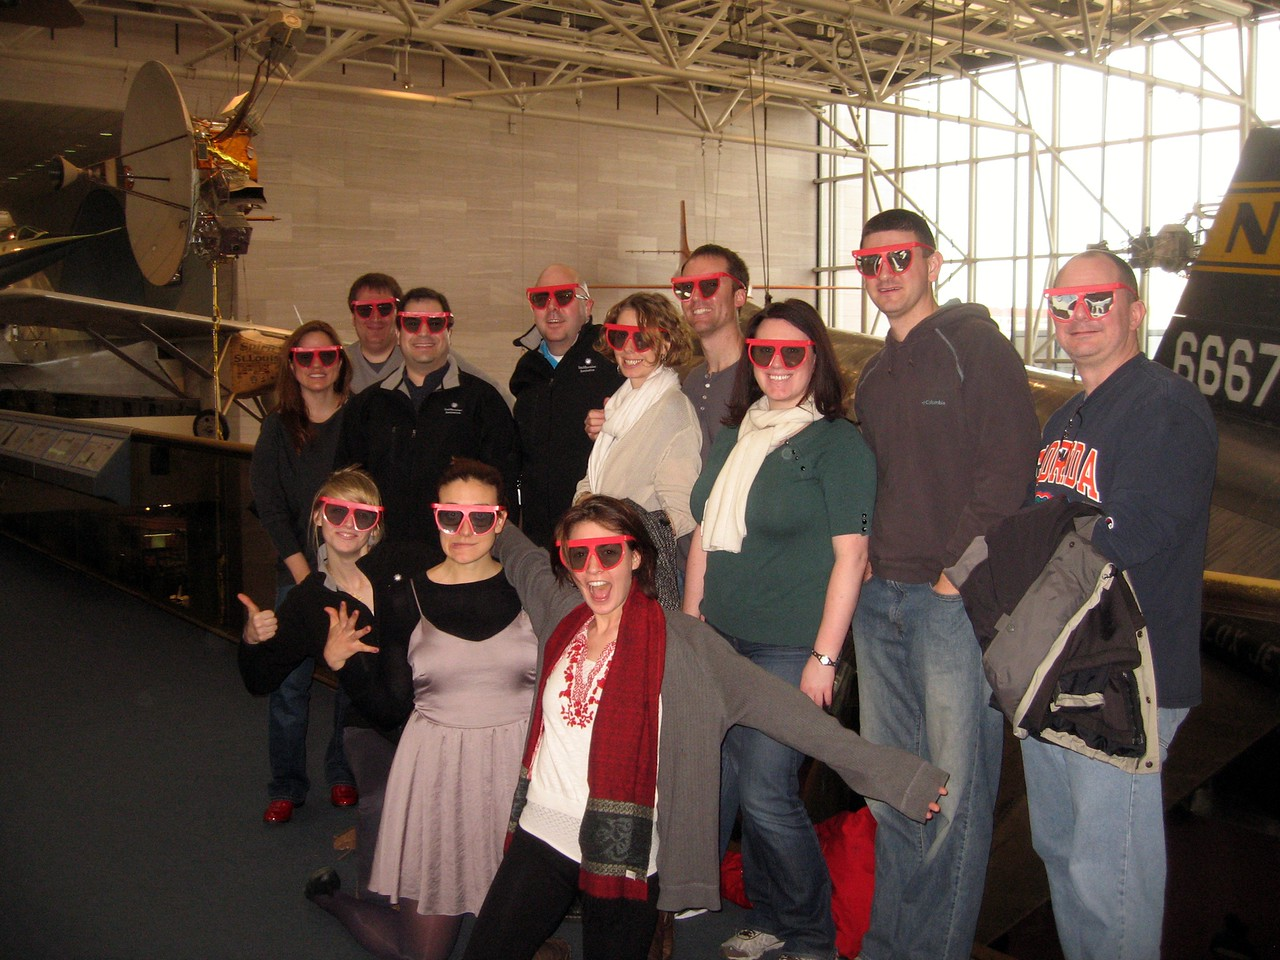 Just after watching Hubble 3D in IMAX 3D, at the Smithsonian's National Air and Space Museum. The Spirit of St. Louis is on the left. (2/26/11)